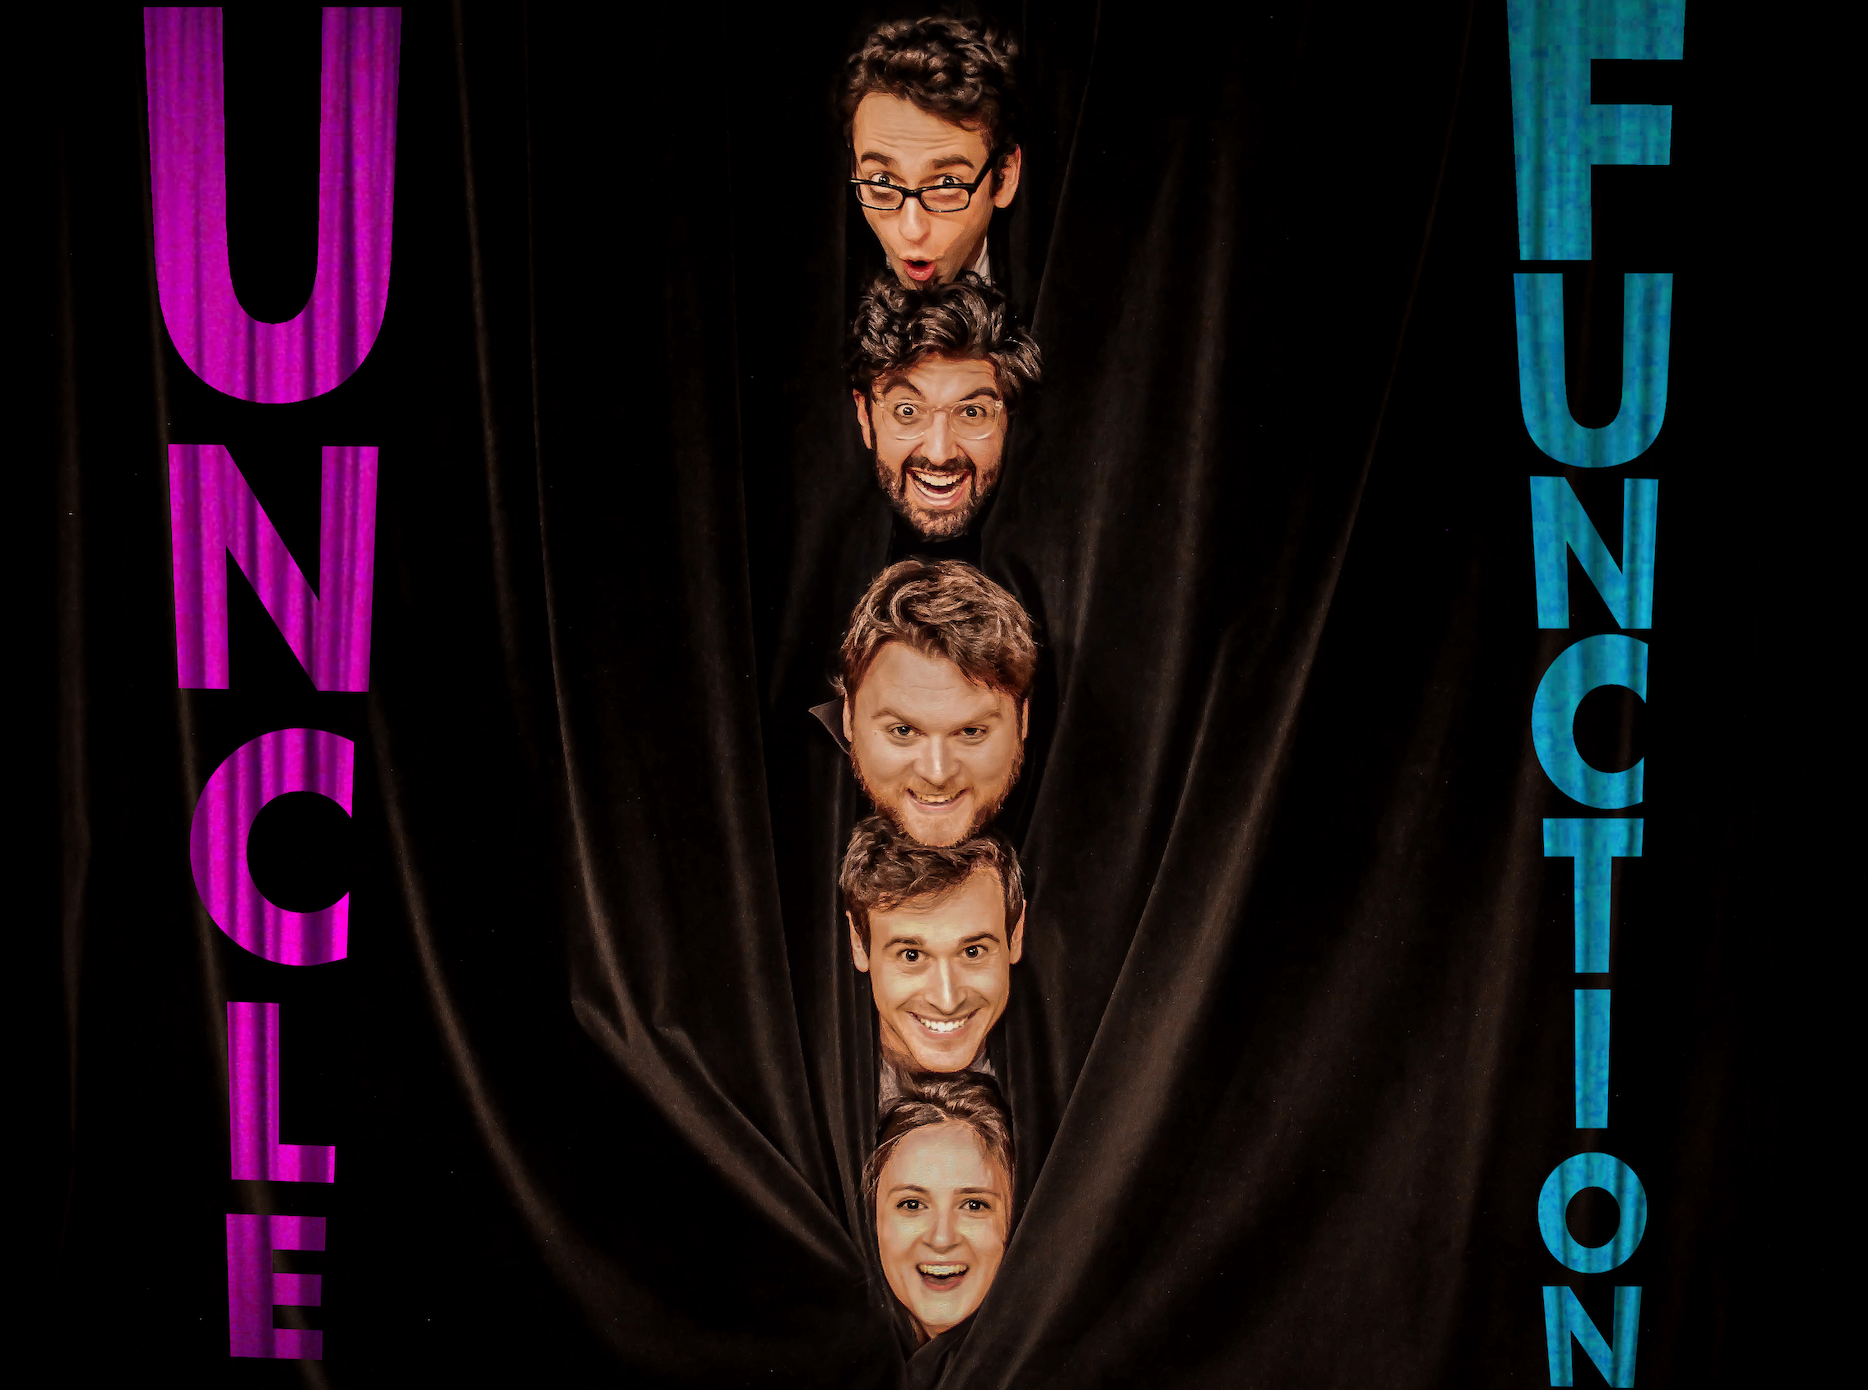 Uncle Function!: Main Image